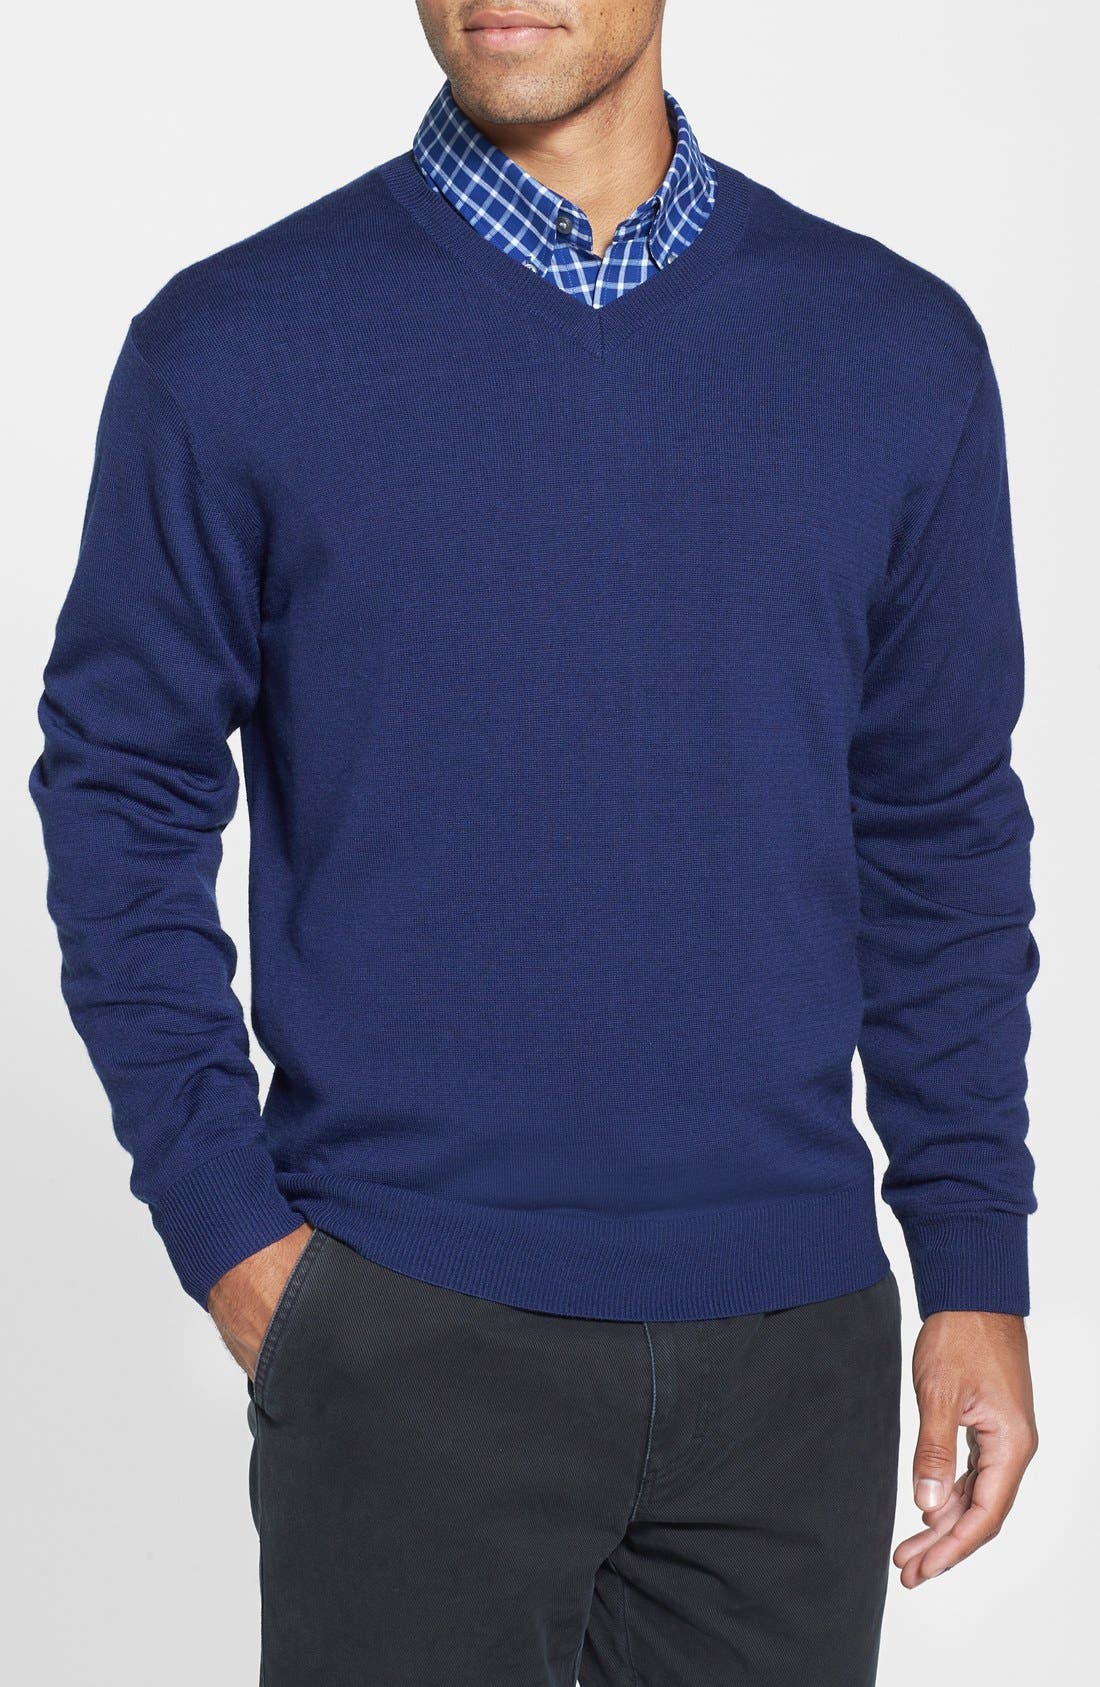 CUTTER & BUCK 'Douglas' V-Neck Sweater